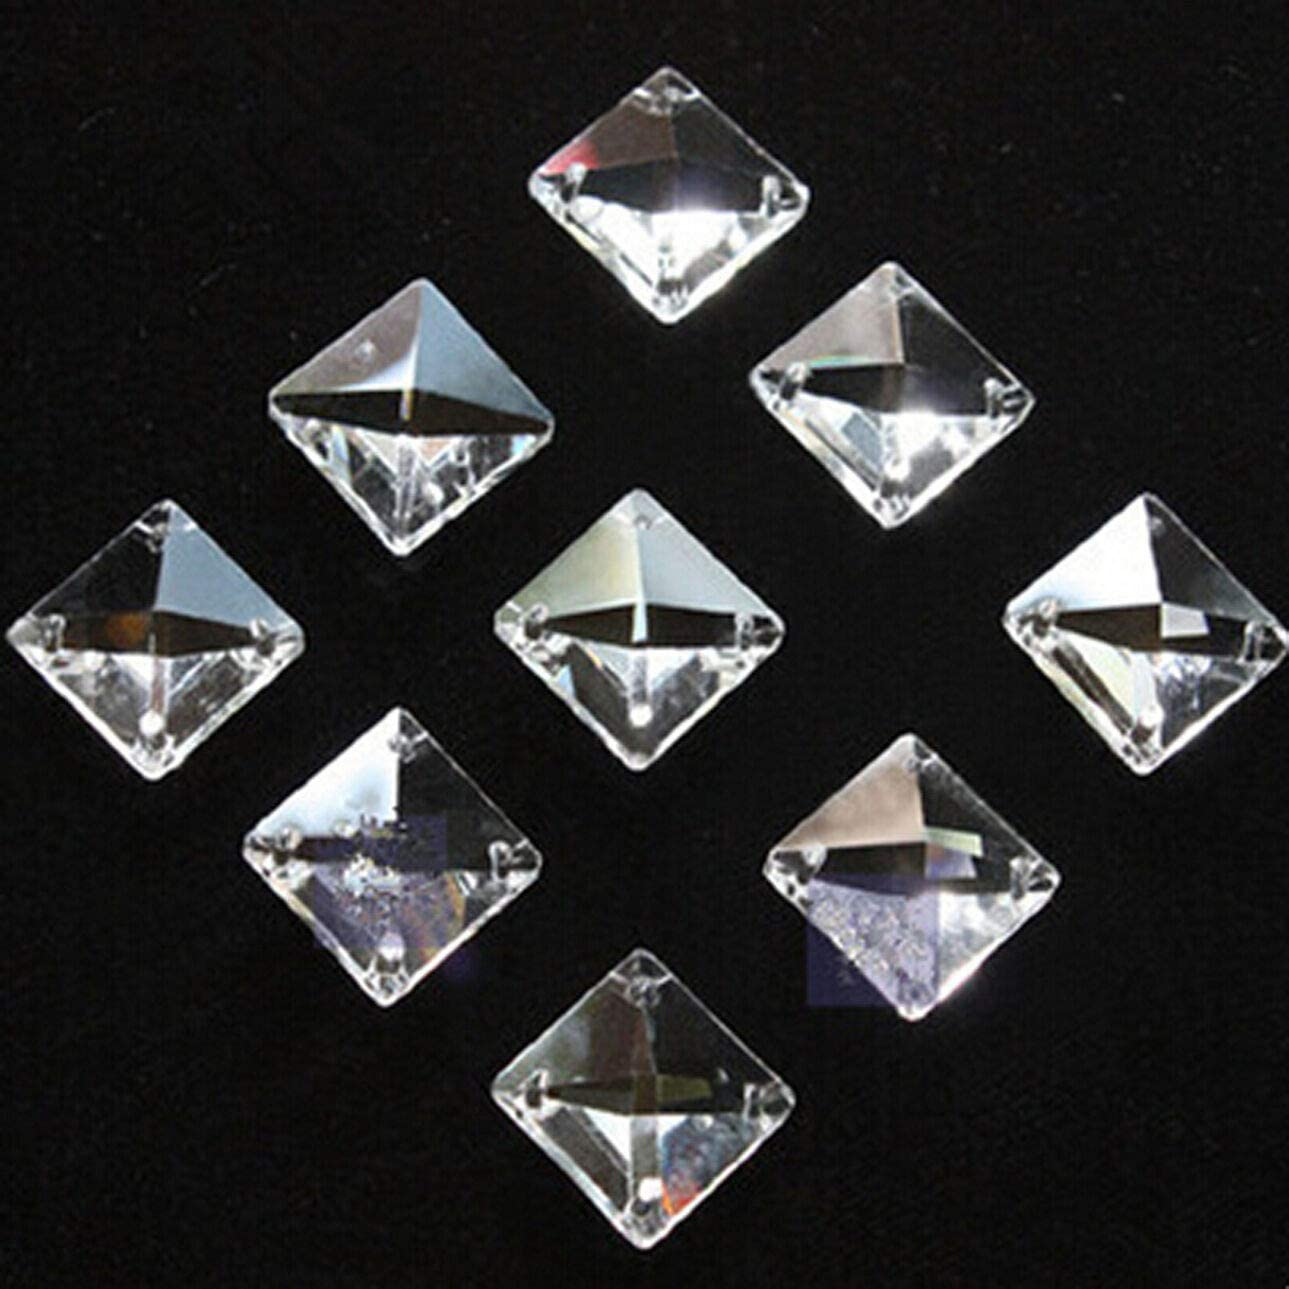 Home Decor A surprise price is realized 50pcs 14mm 4 Holes Beads mart Square Glass Crystal Prisms